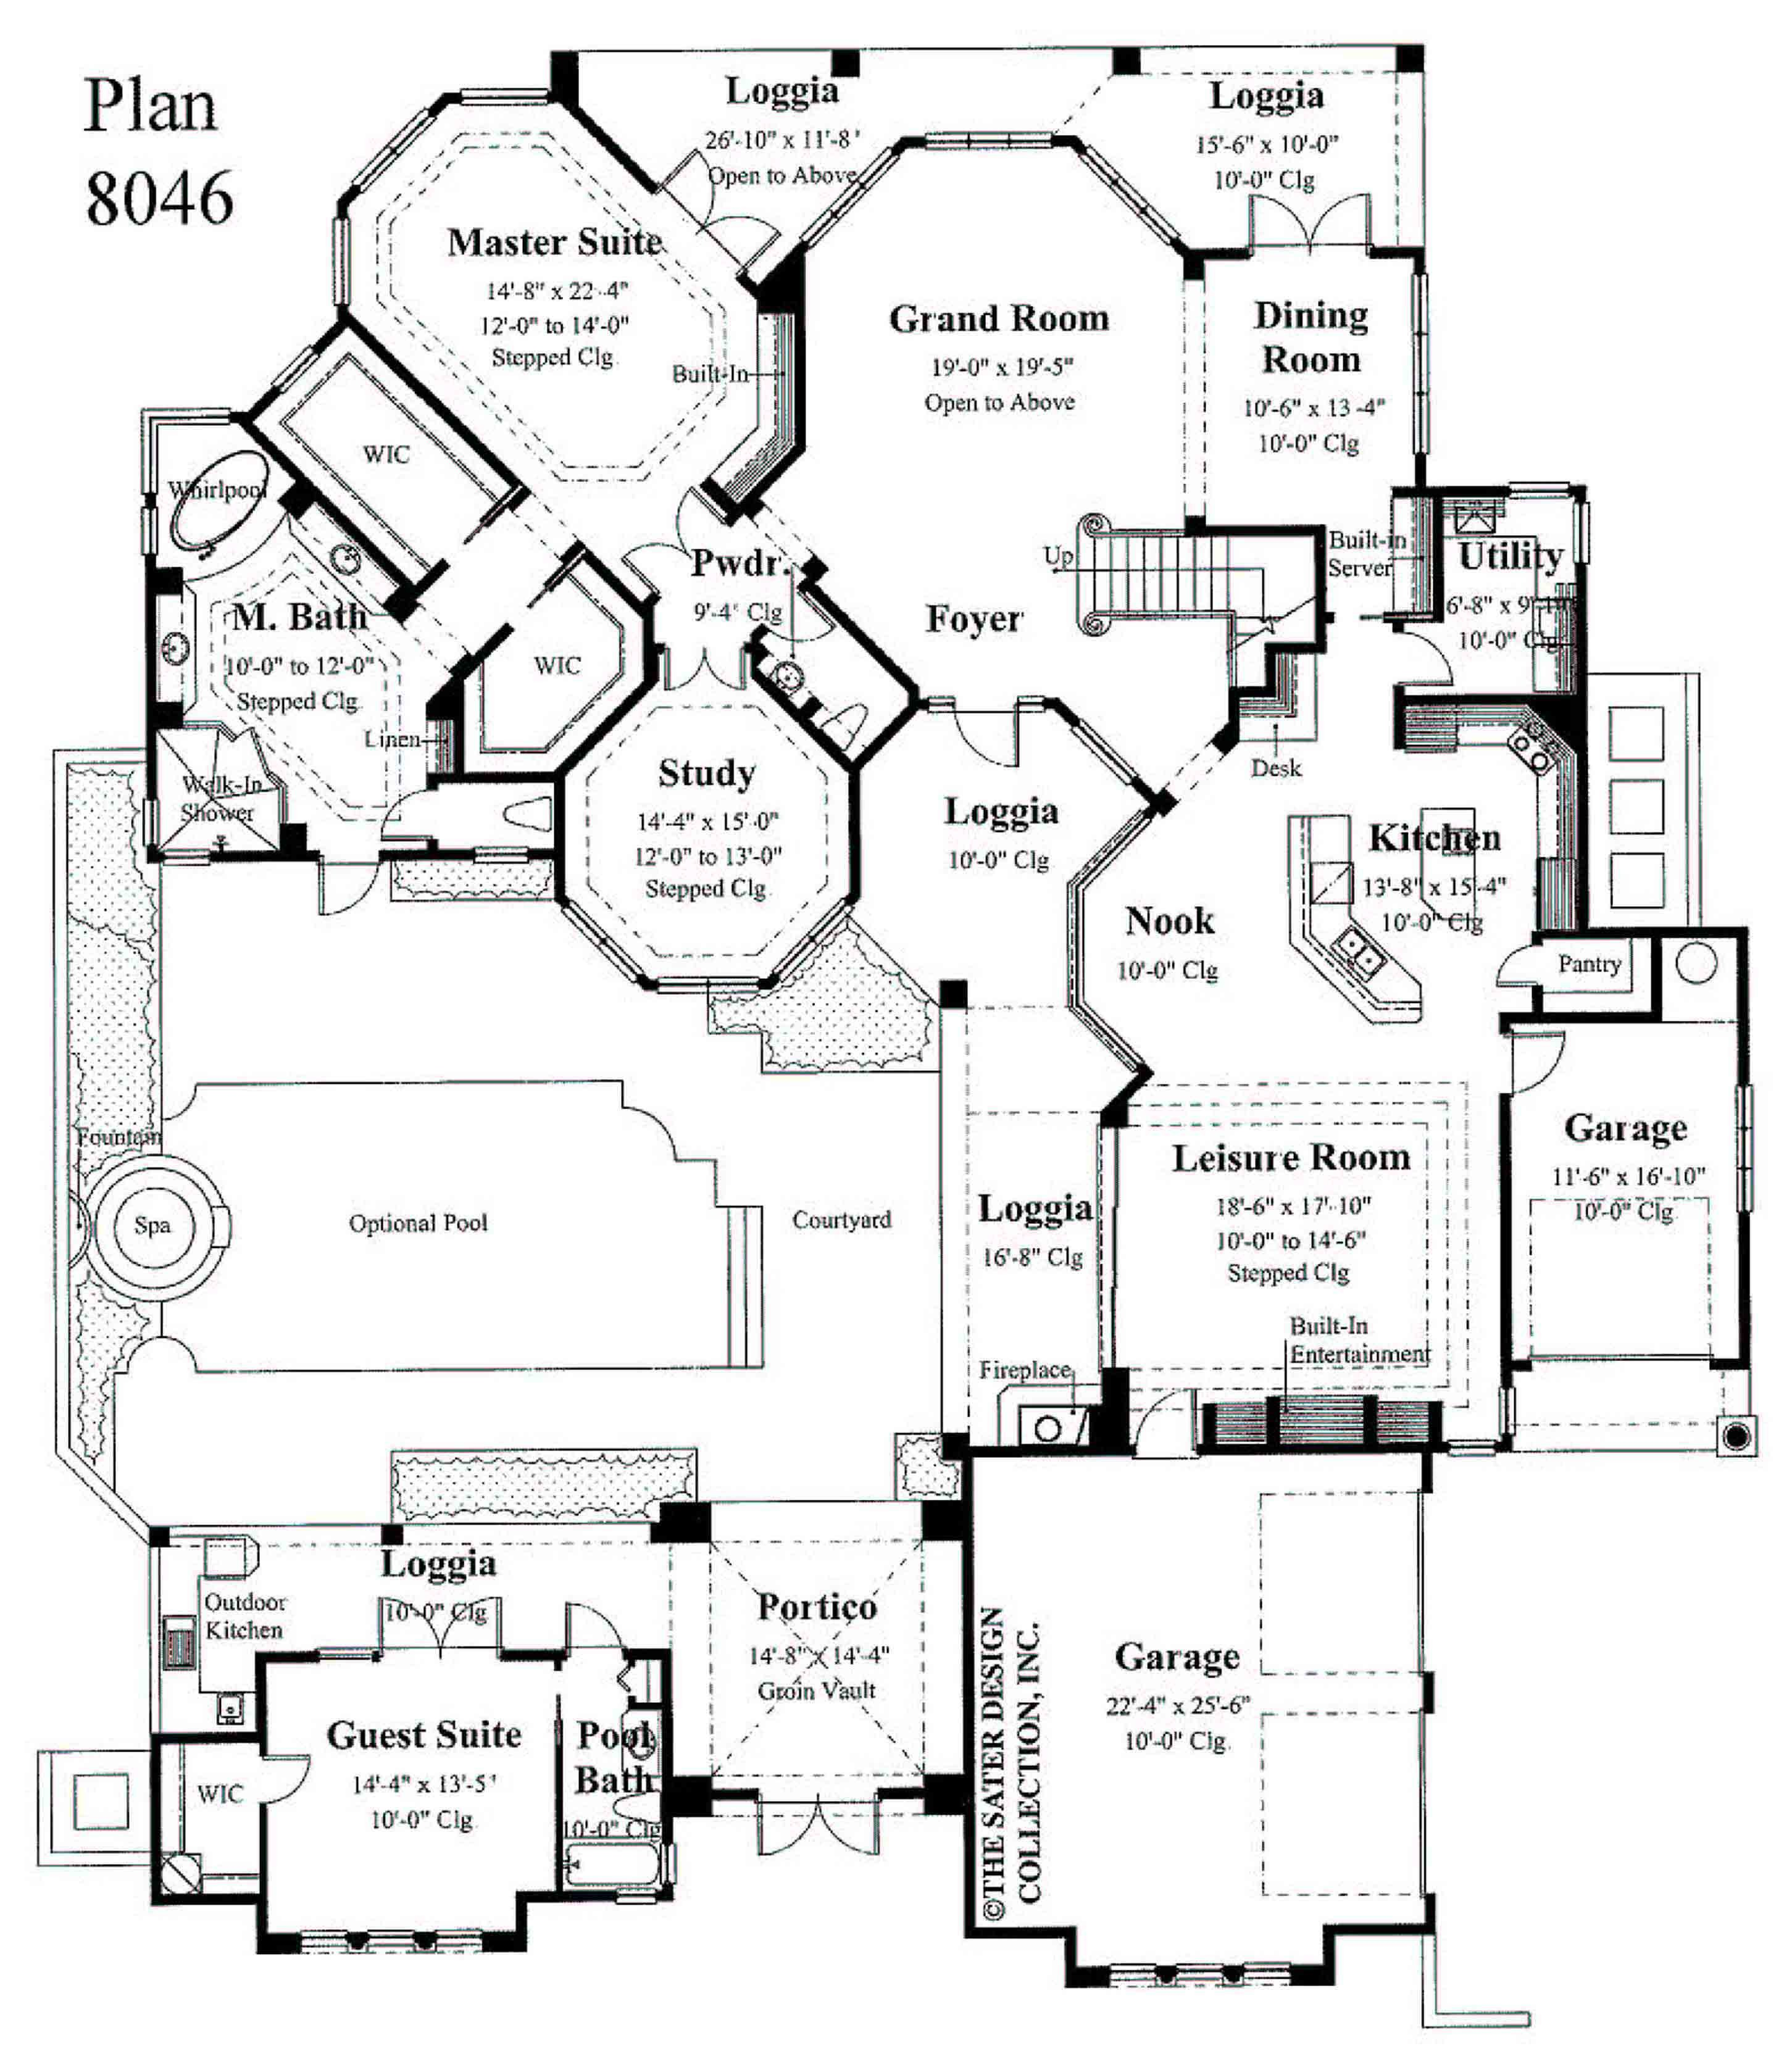 2903x3336 Free 3d Drawing Software For House Plans Luxury Architectural